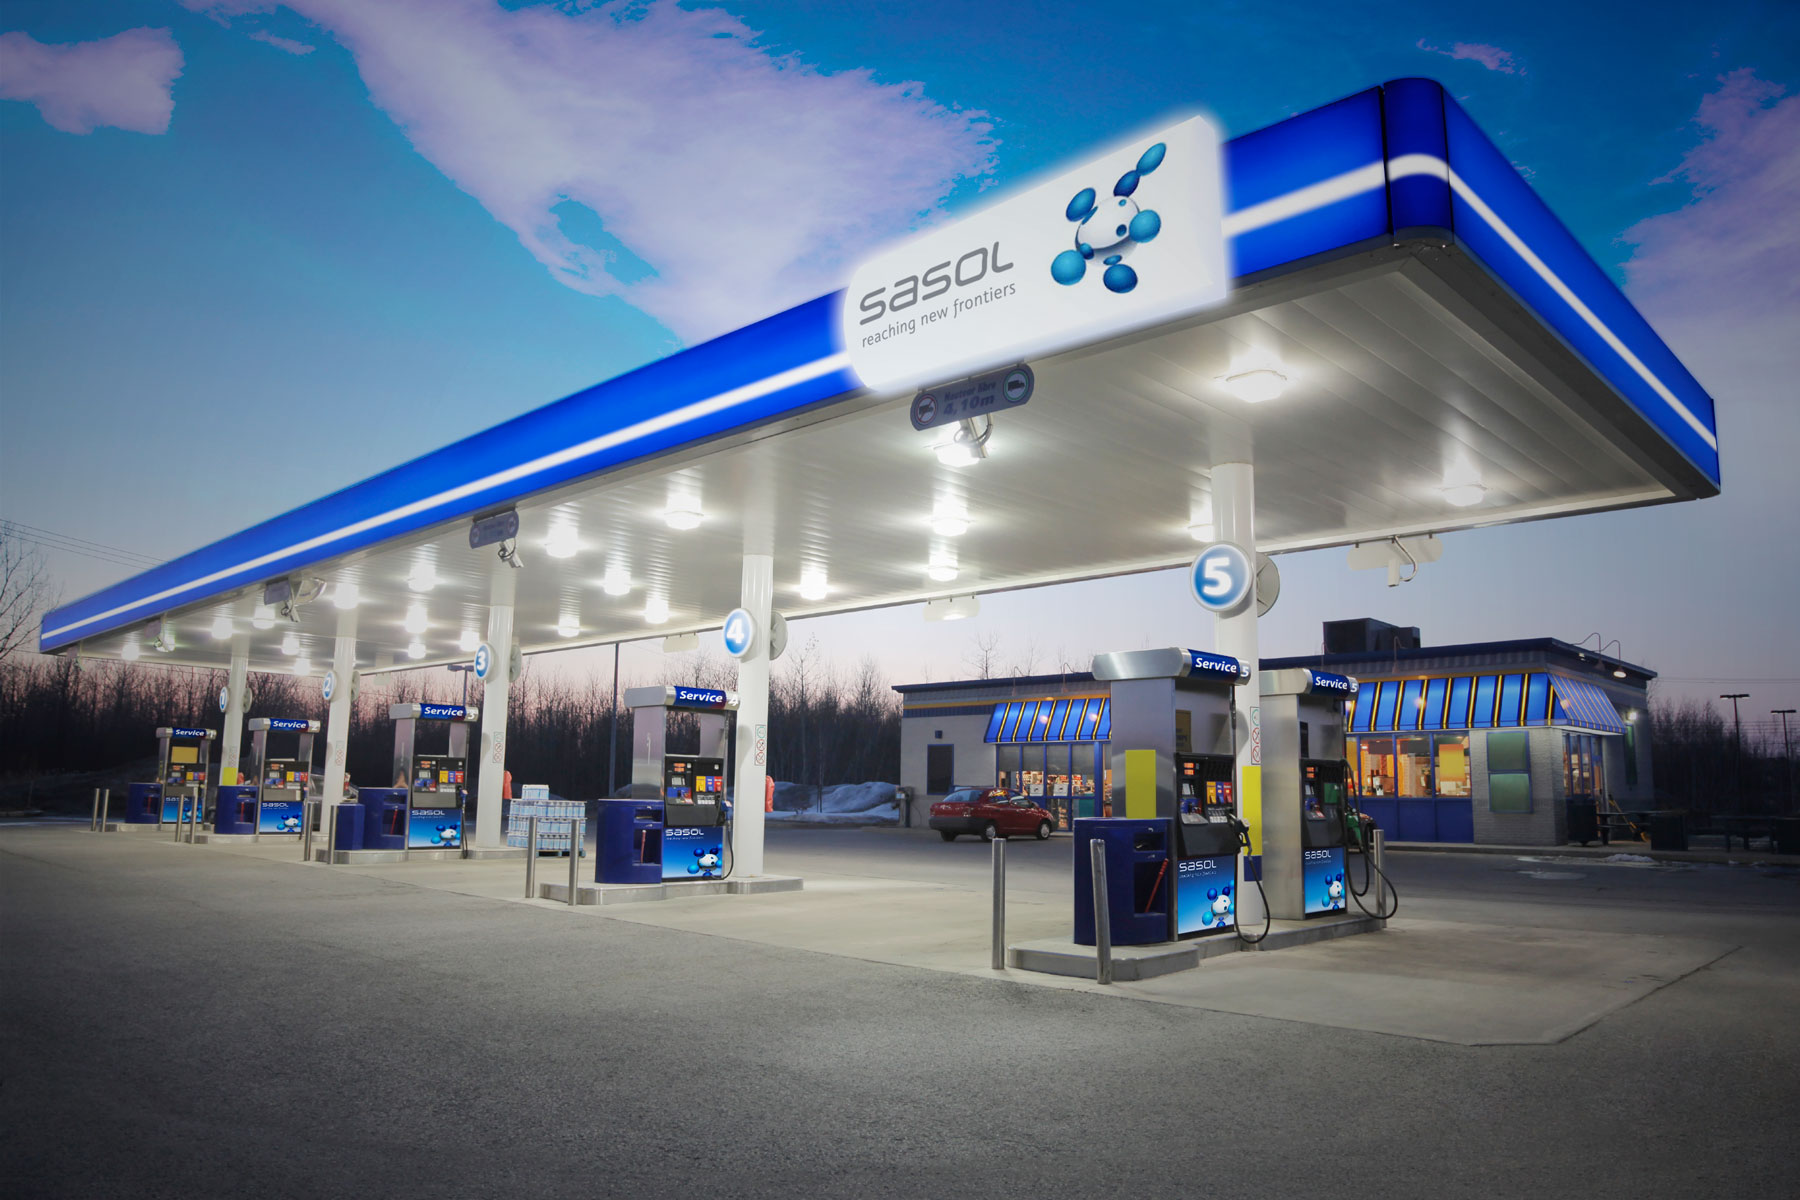 The blue and white brand colours are used extensively in signage and in environmental feature design, aiding standout and recognition.